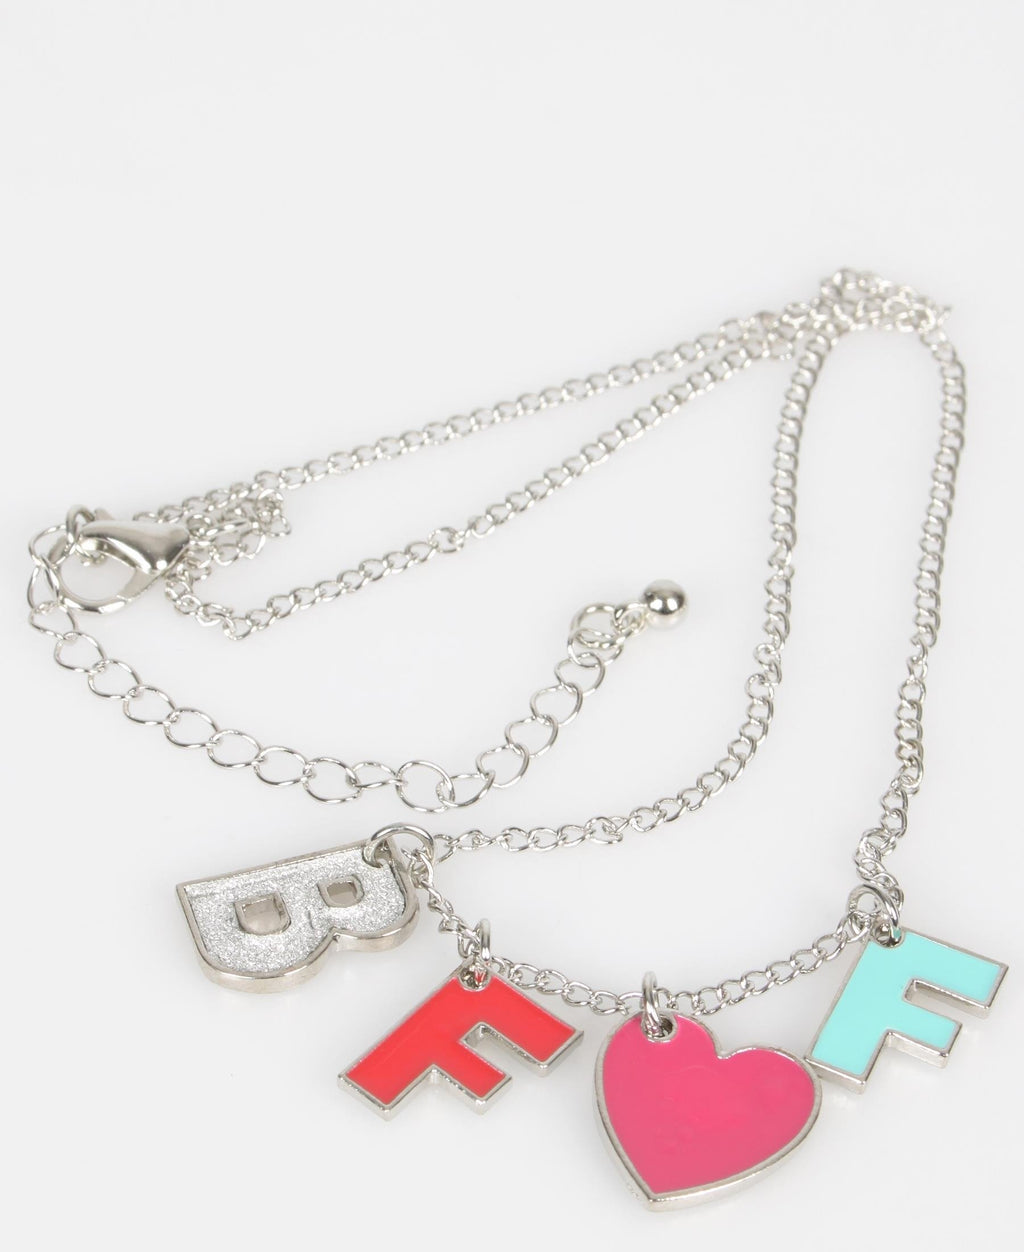 Girls Necklace - Silver